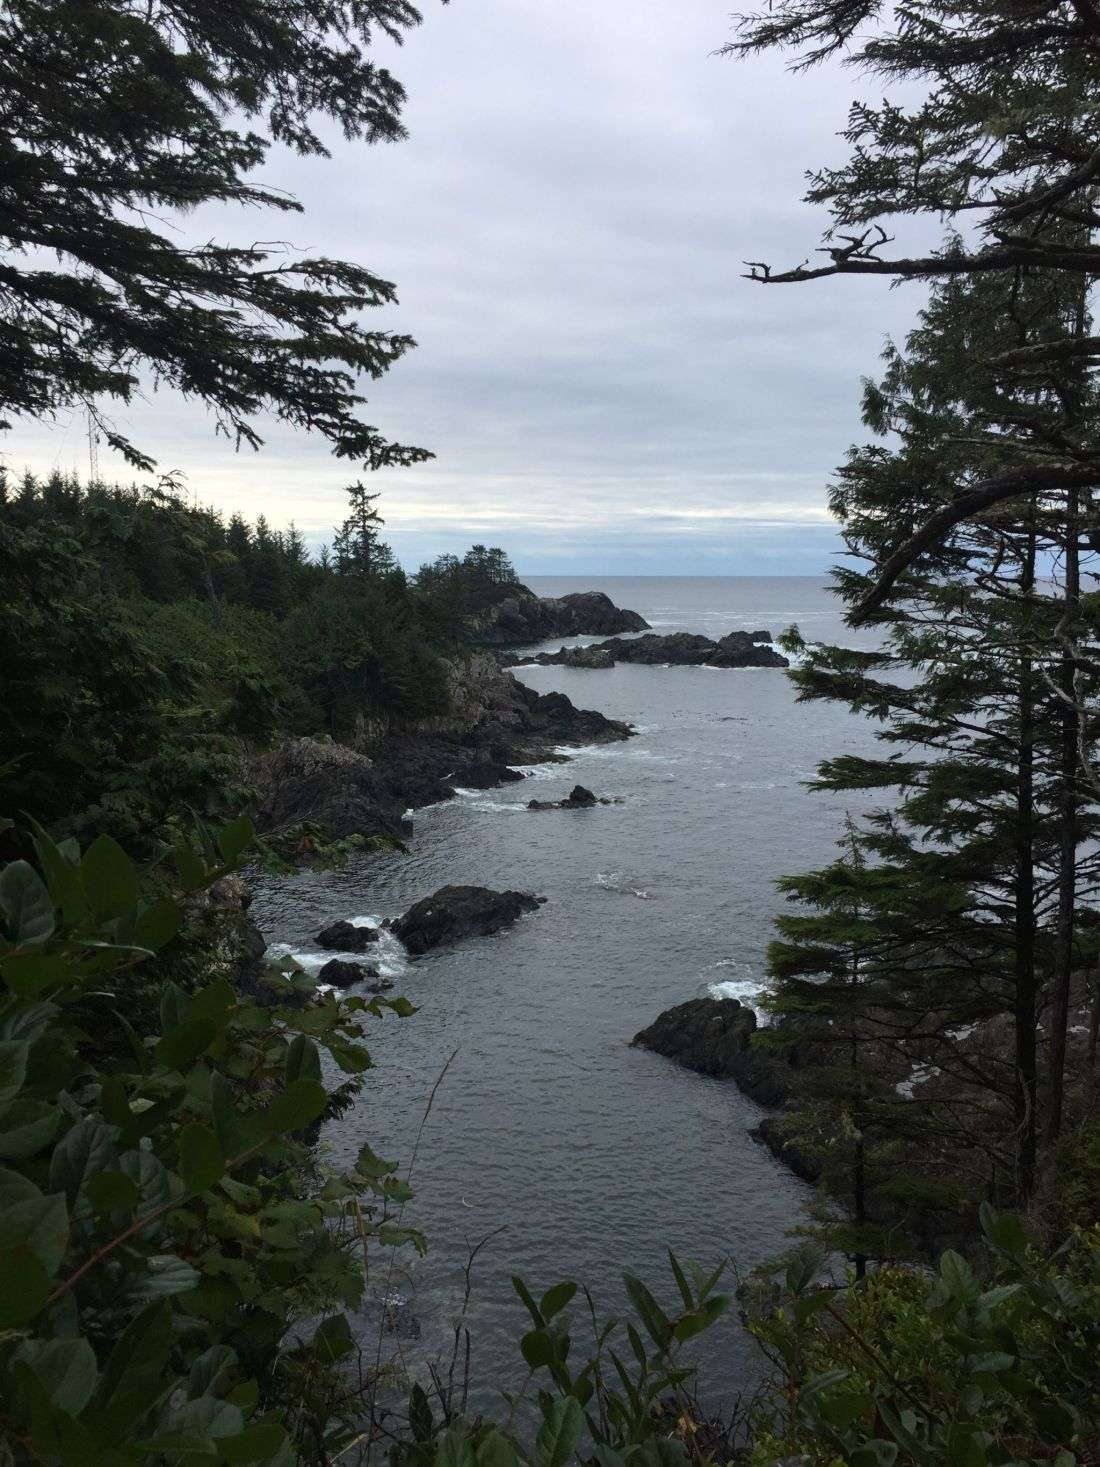 A lookout across the black rocks and ocean from the Wild Pacific Trail, near Tofino